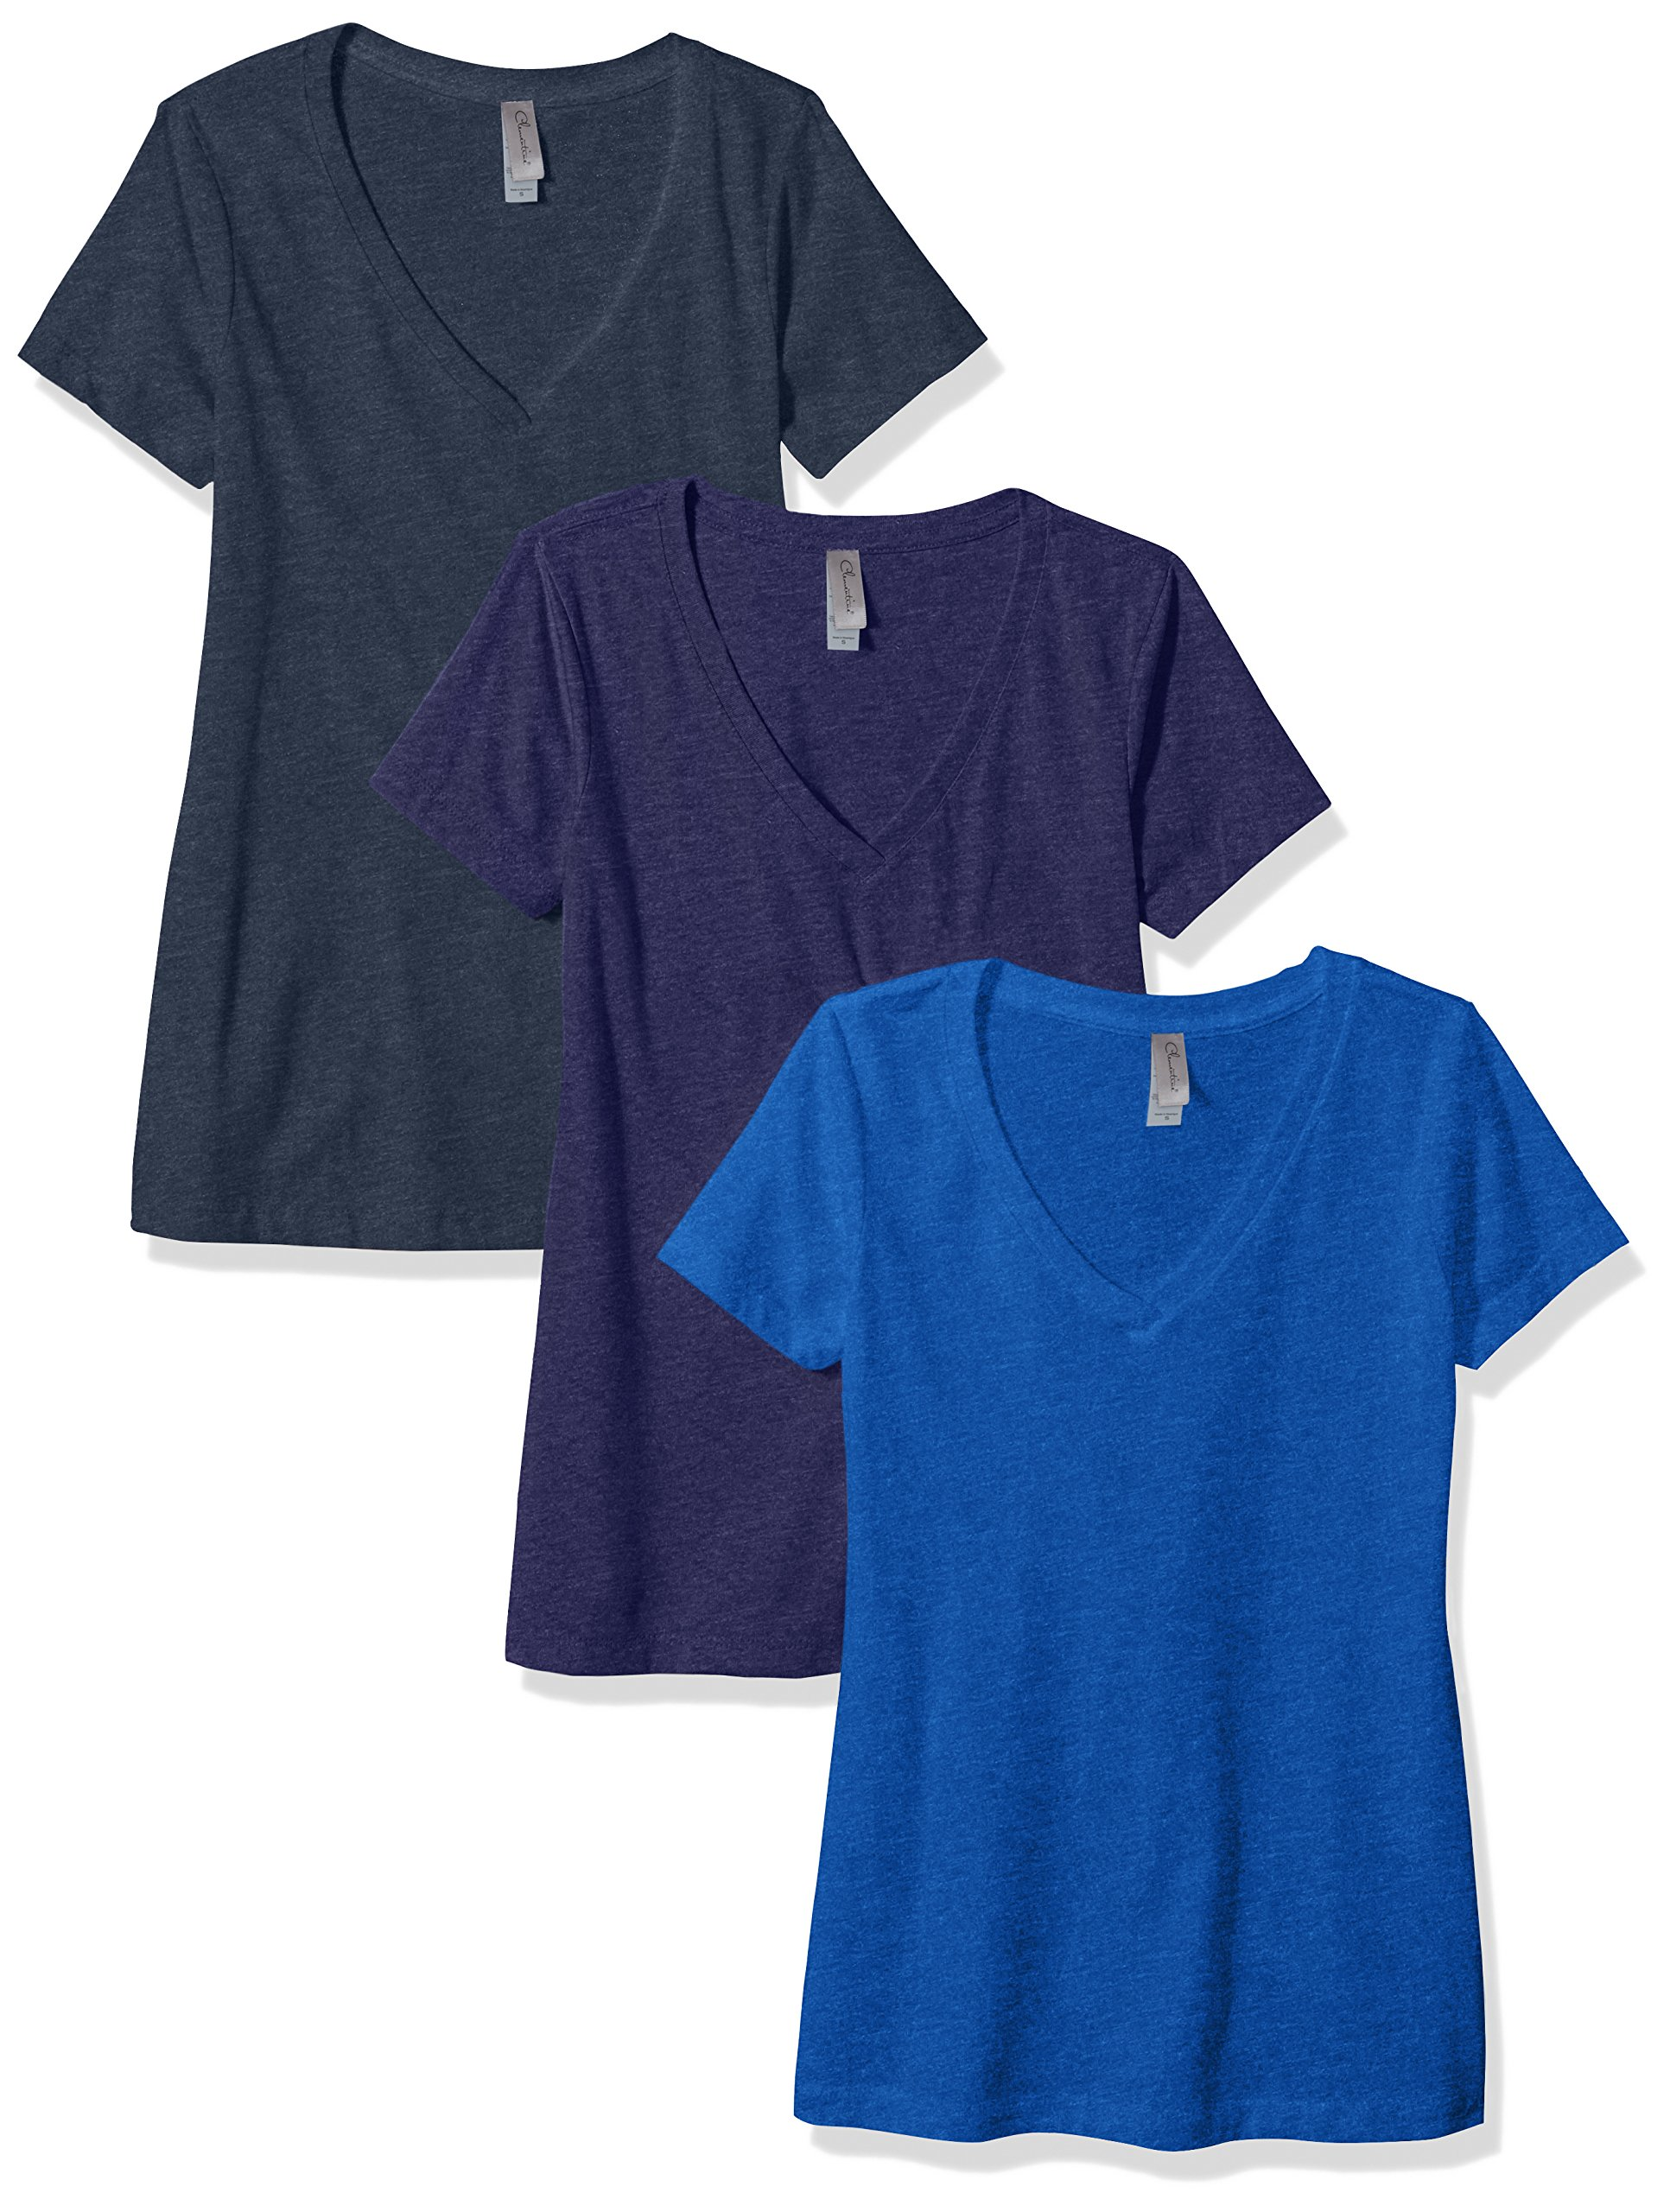 Clementine Apparel Women's Petite Plus Deep V Neck Tee (Pack of 3), Storm/Midnight Navy/Royal, M